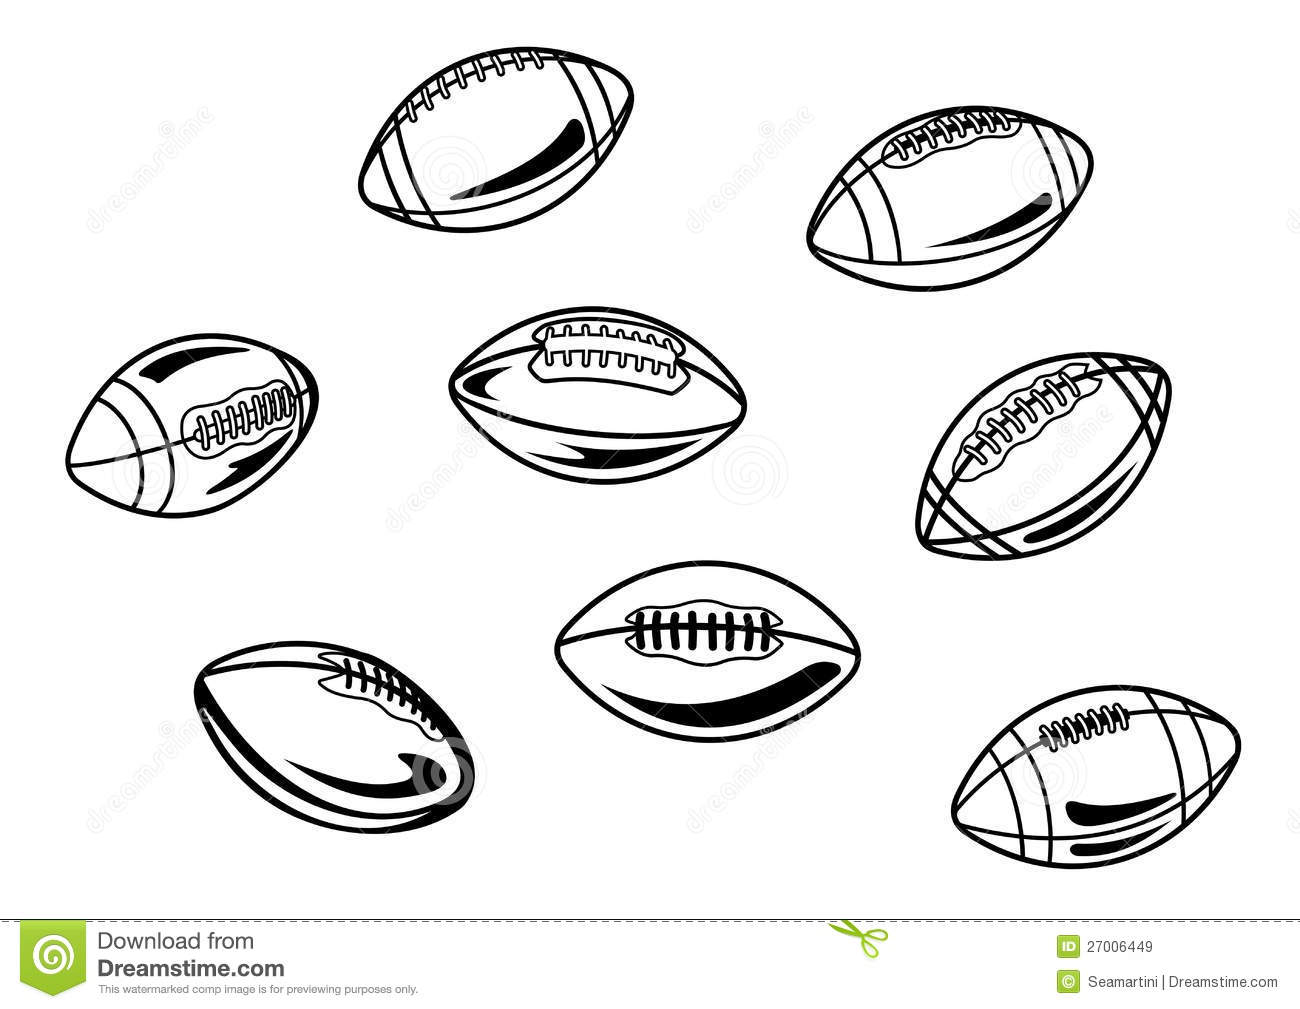 rugby and american football balls royalty free stock images image 27006449. Black Bedroom Furniture Sets. Home Design Ideas